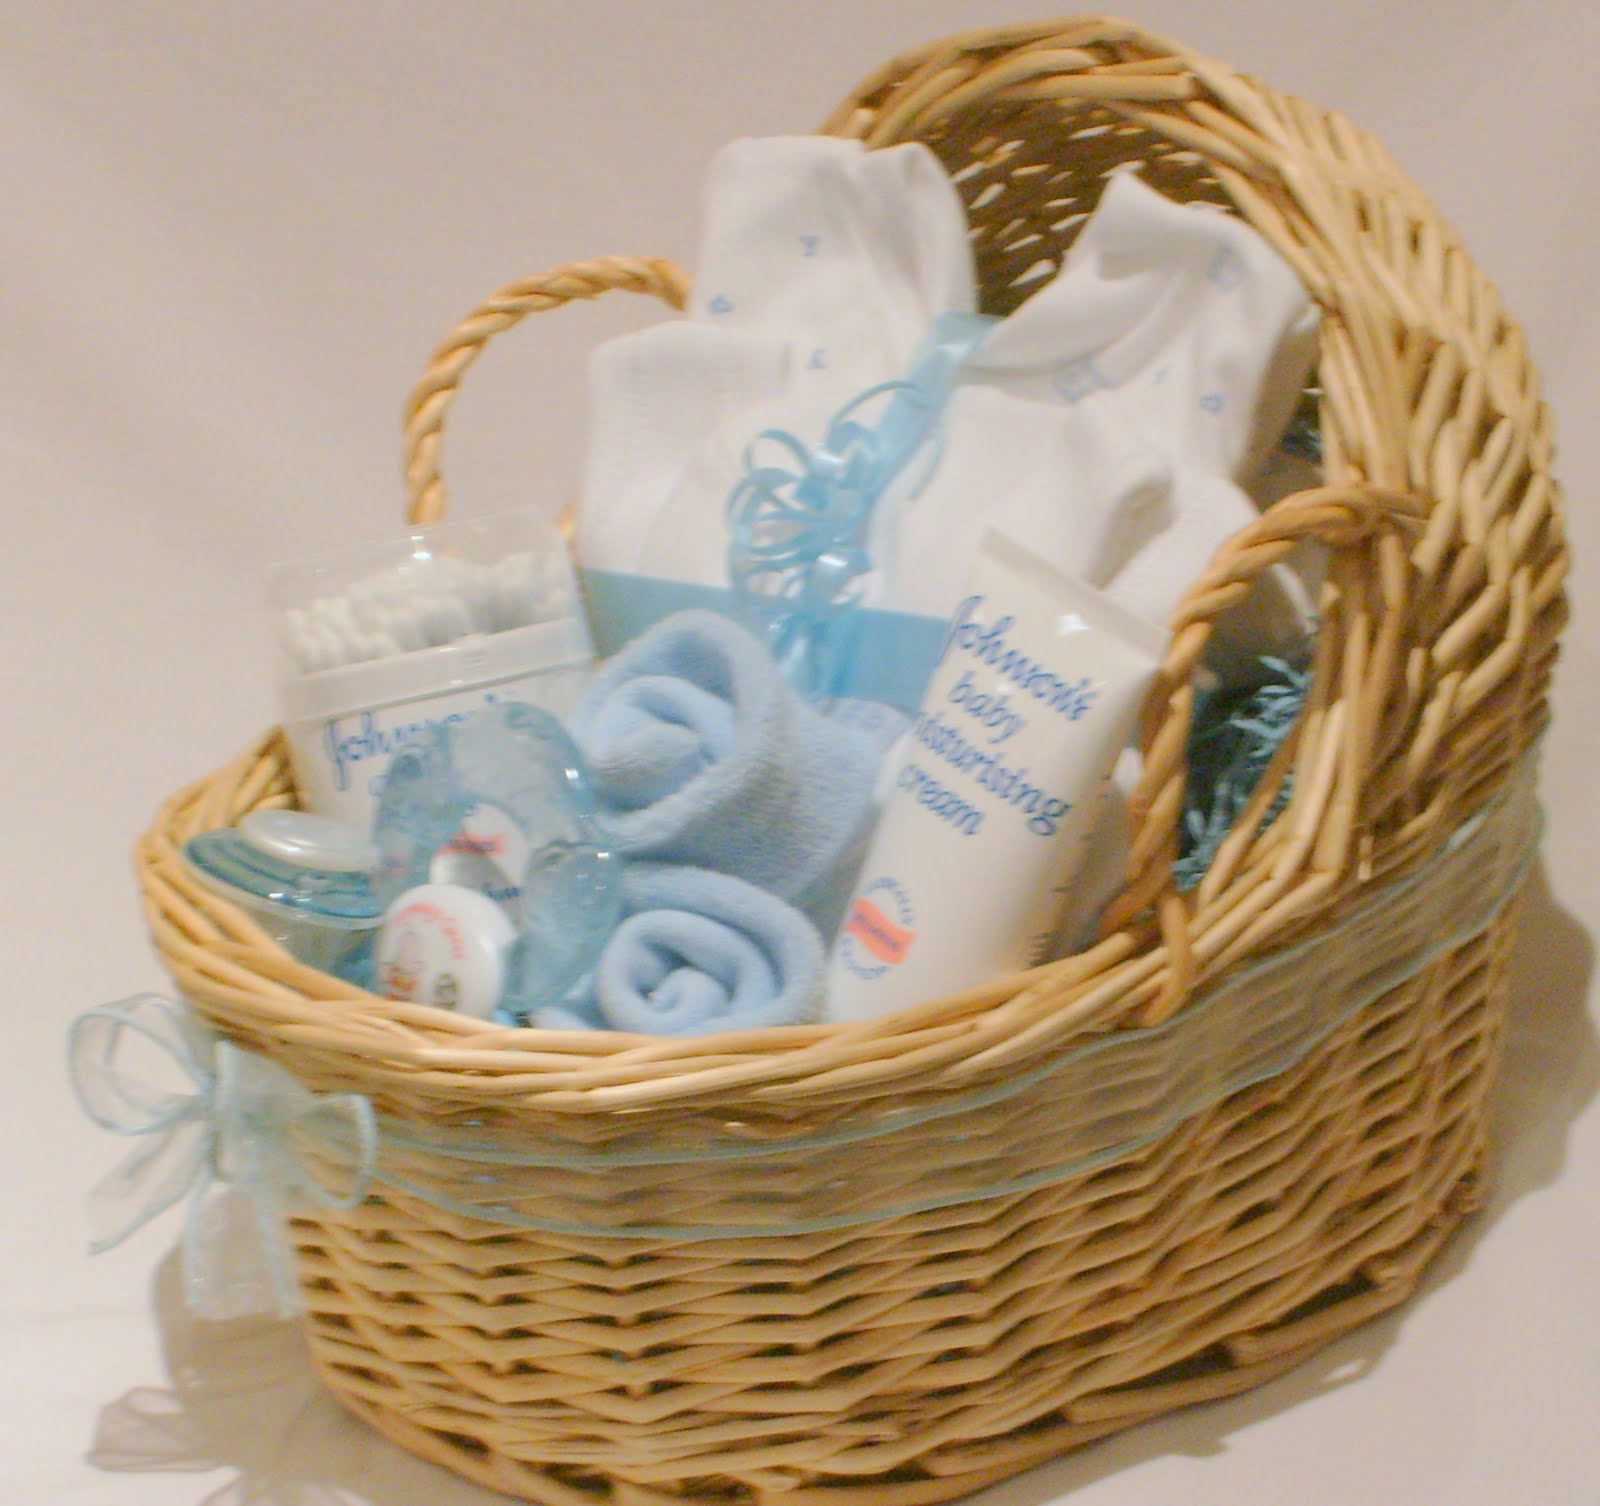 New Home Gifts Gift Baskets Gifts Com: New Baby Gift Baskets